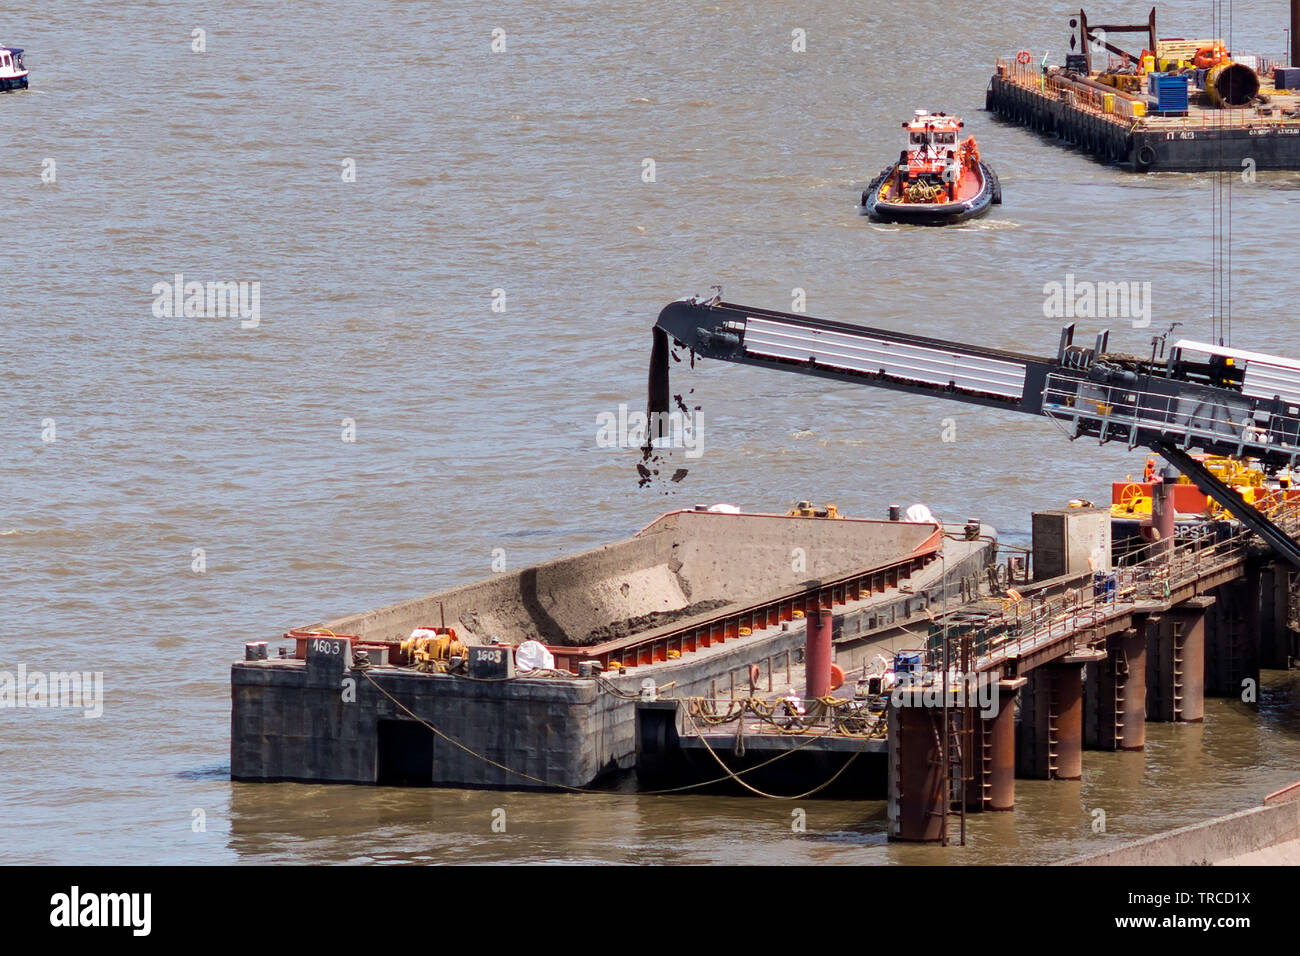 Earth from the Thames Tideway Tunnel is loaded onto a barge on the river Thames at Battersea Power Station.  31/5/2019 - Stock Image